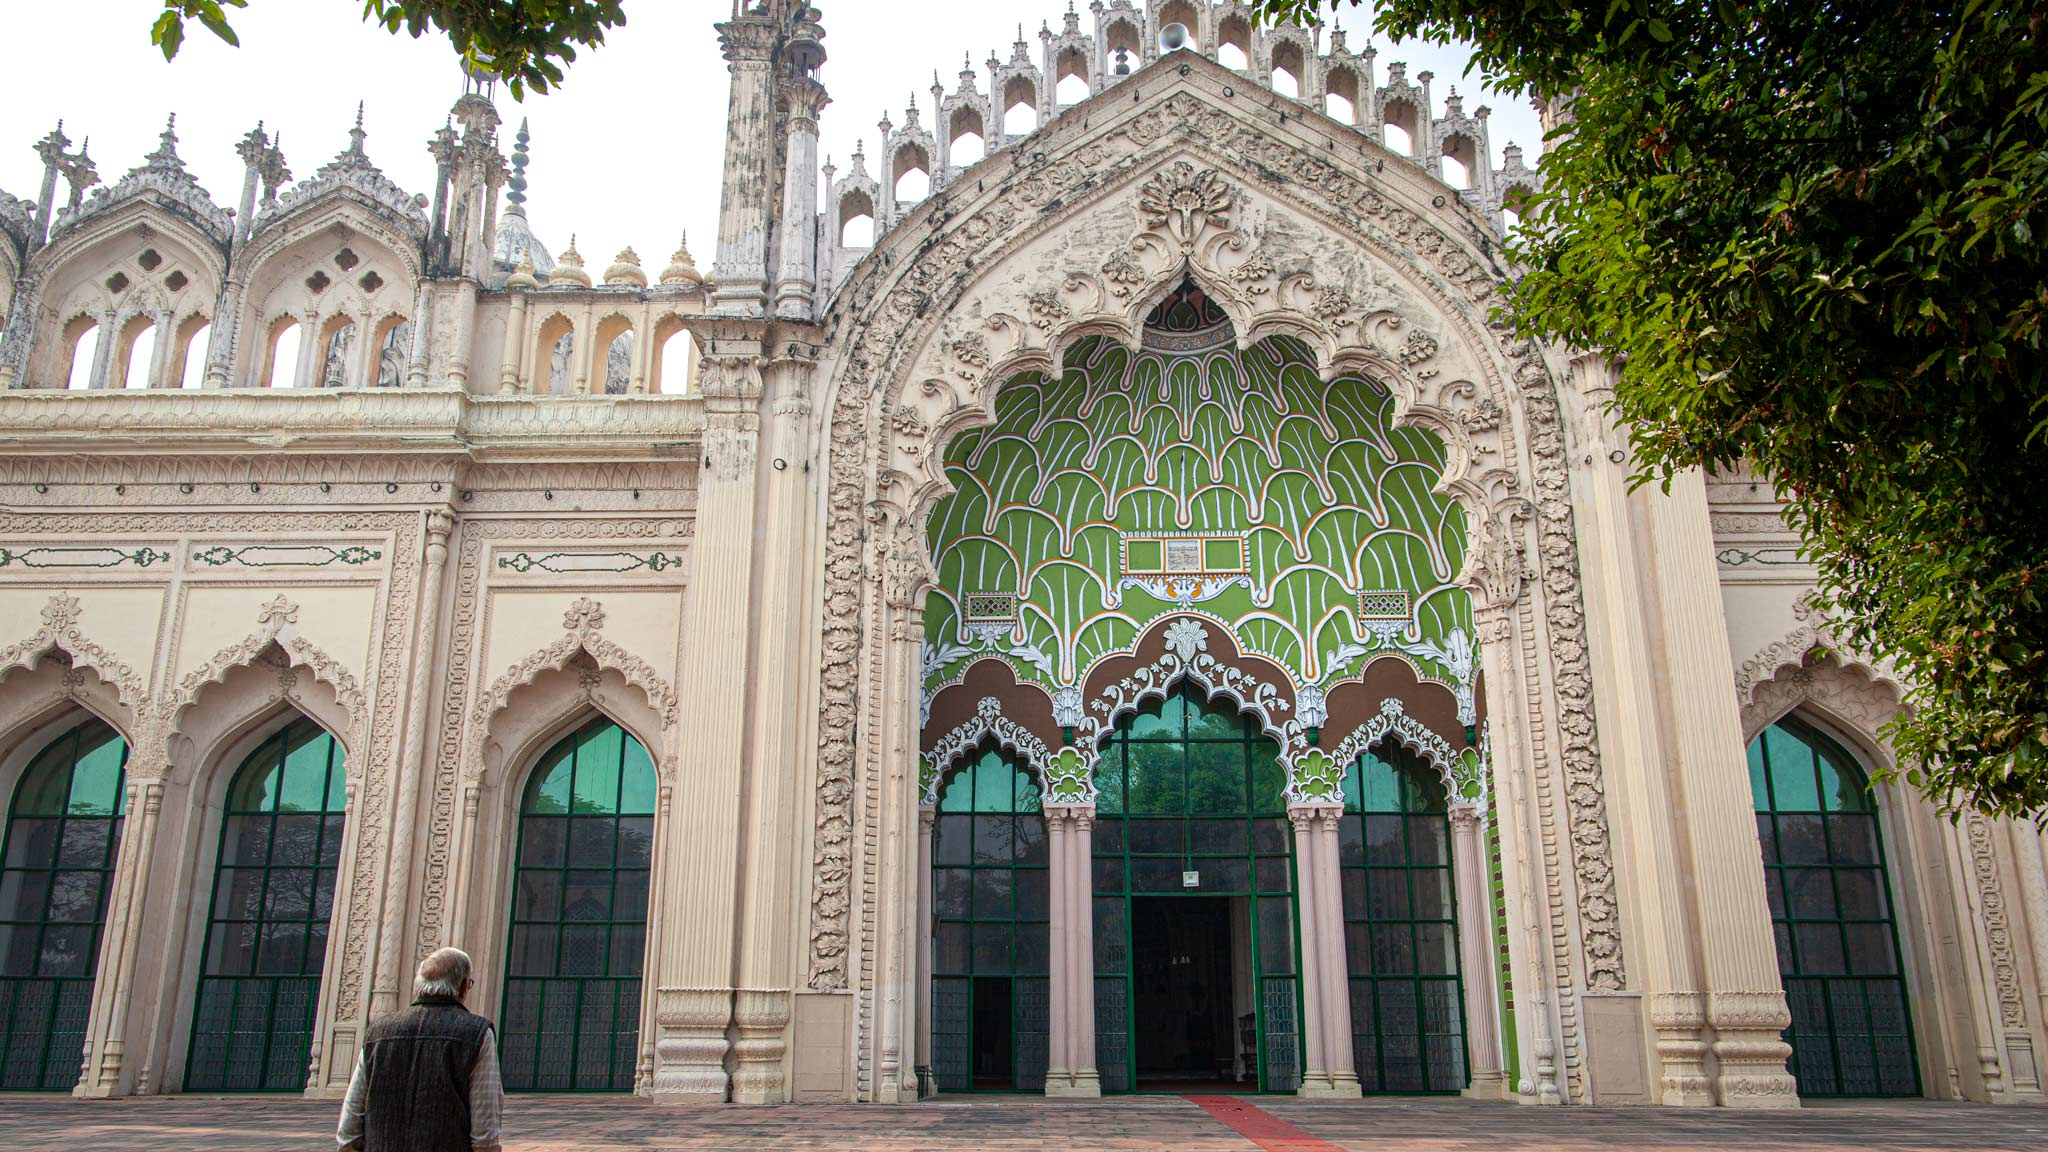 The entrance gate to Jama Masjid Mosque in Lucknow, where a man stands praying to the left and various archways with colourful tiles are on the building